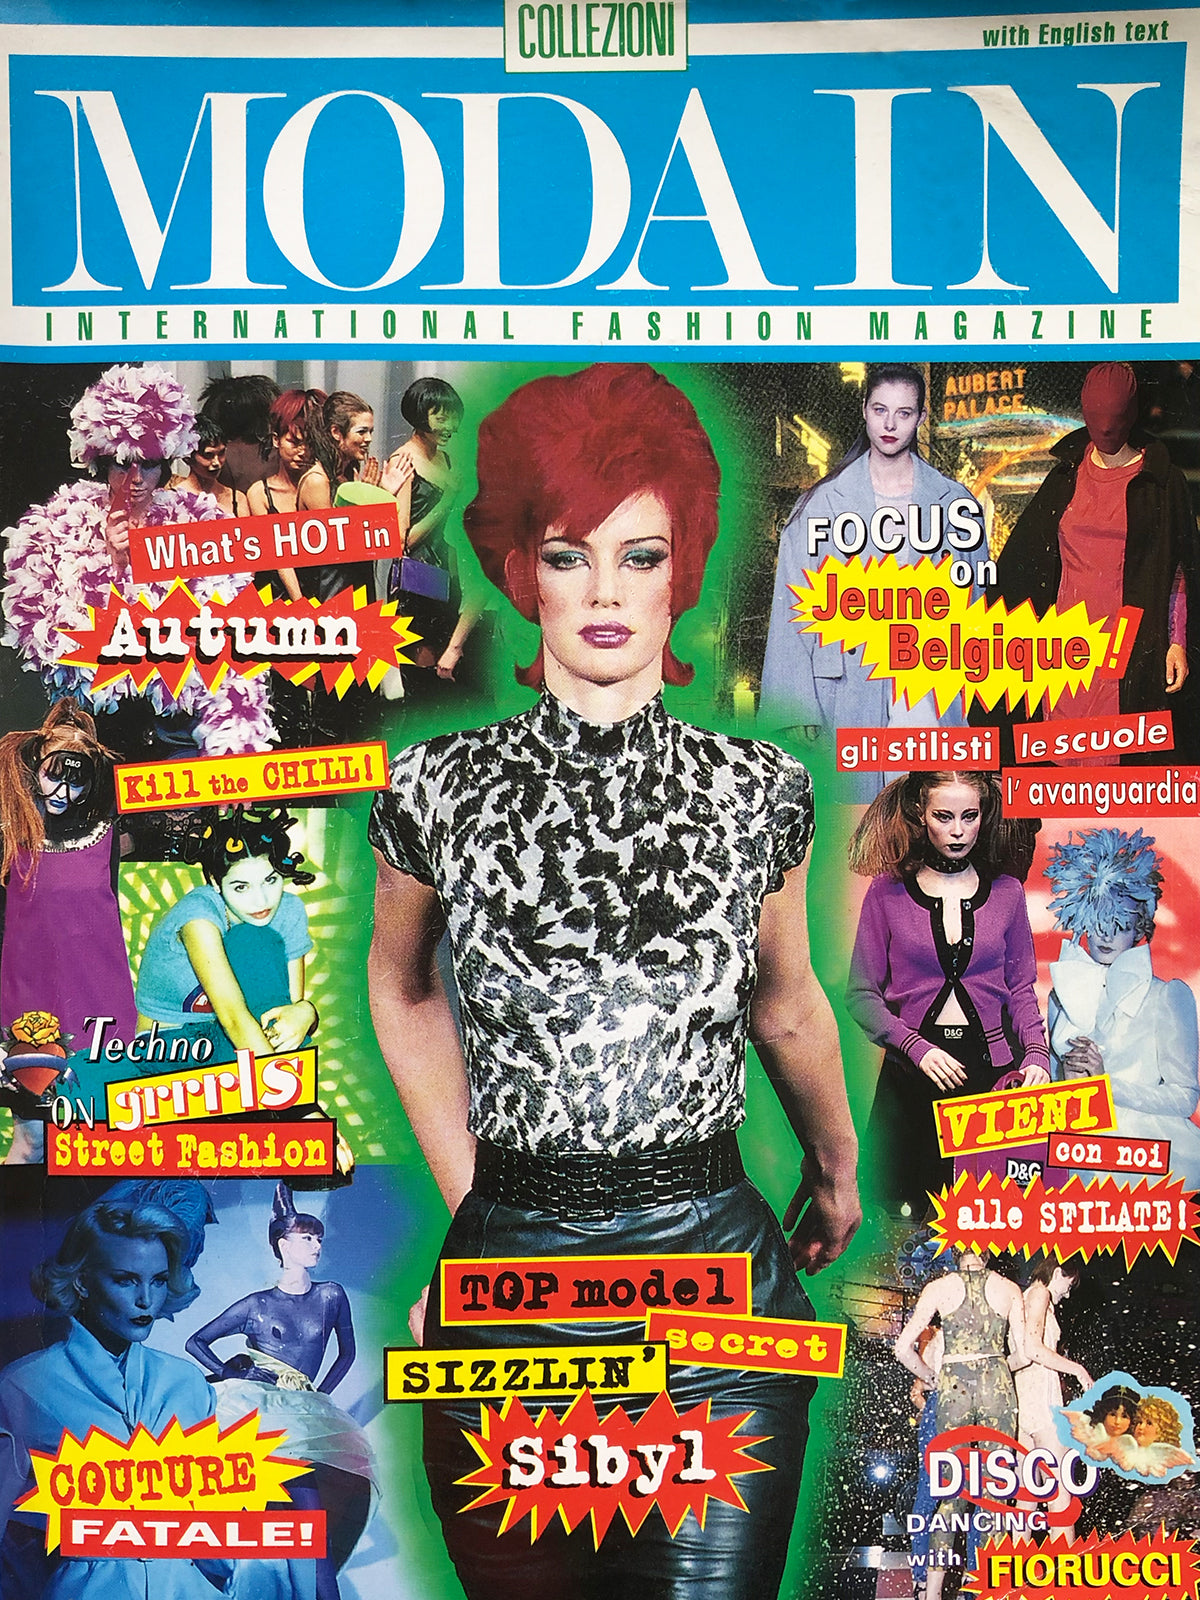 Archived - MODA IN Collezioni N. 96 July-September 1995